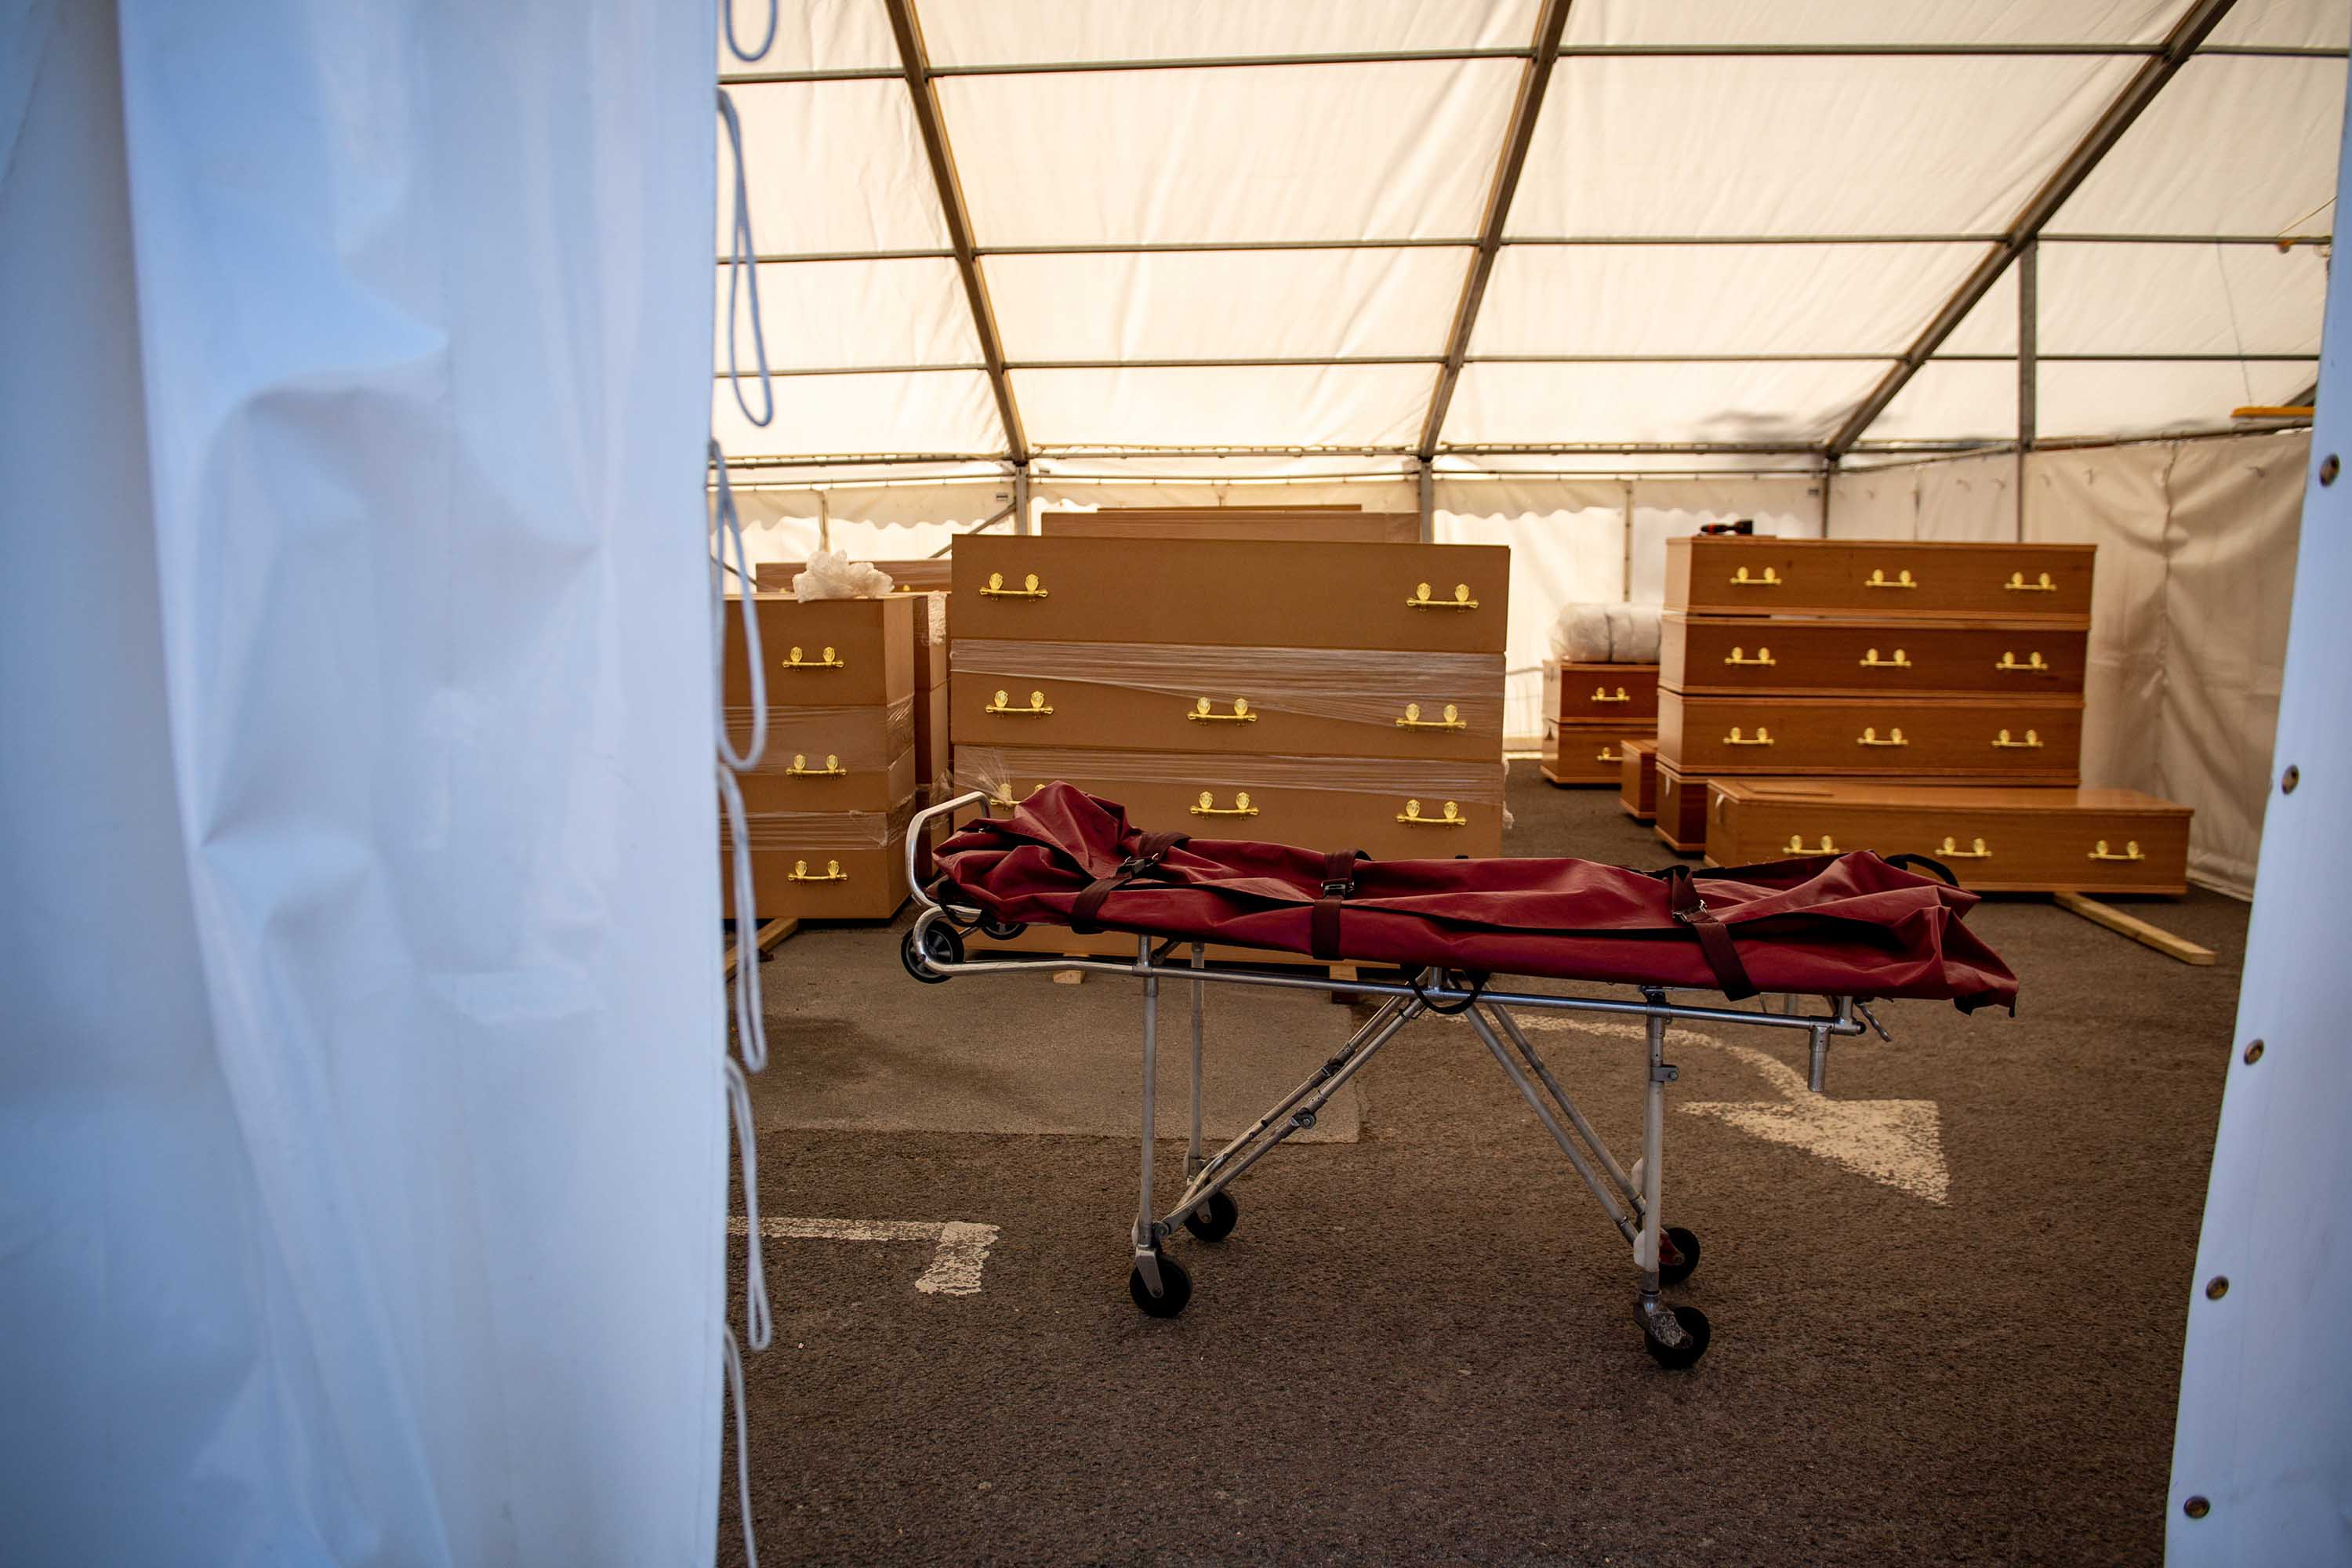 A stretcher which had been used recently to transport a body is pictured at a temporary morgue at a mosque in Birmingham, England, on April 20.